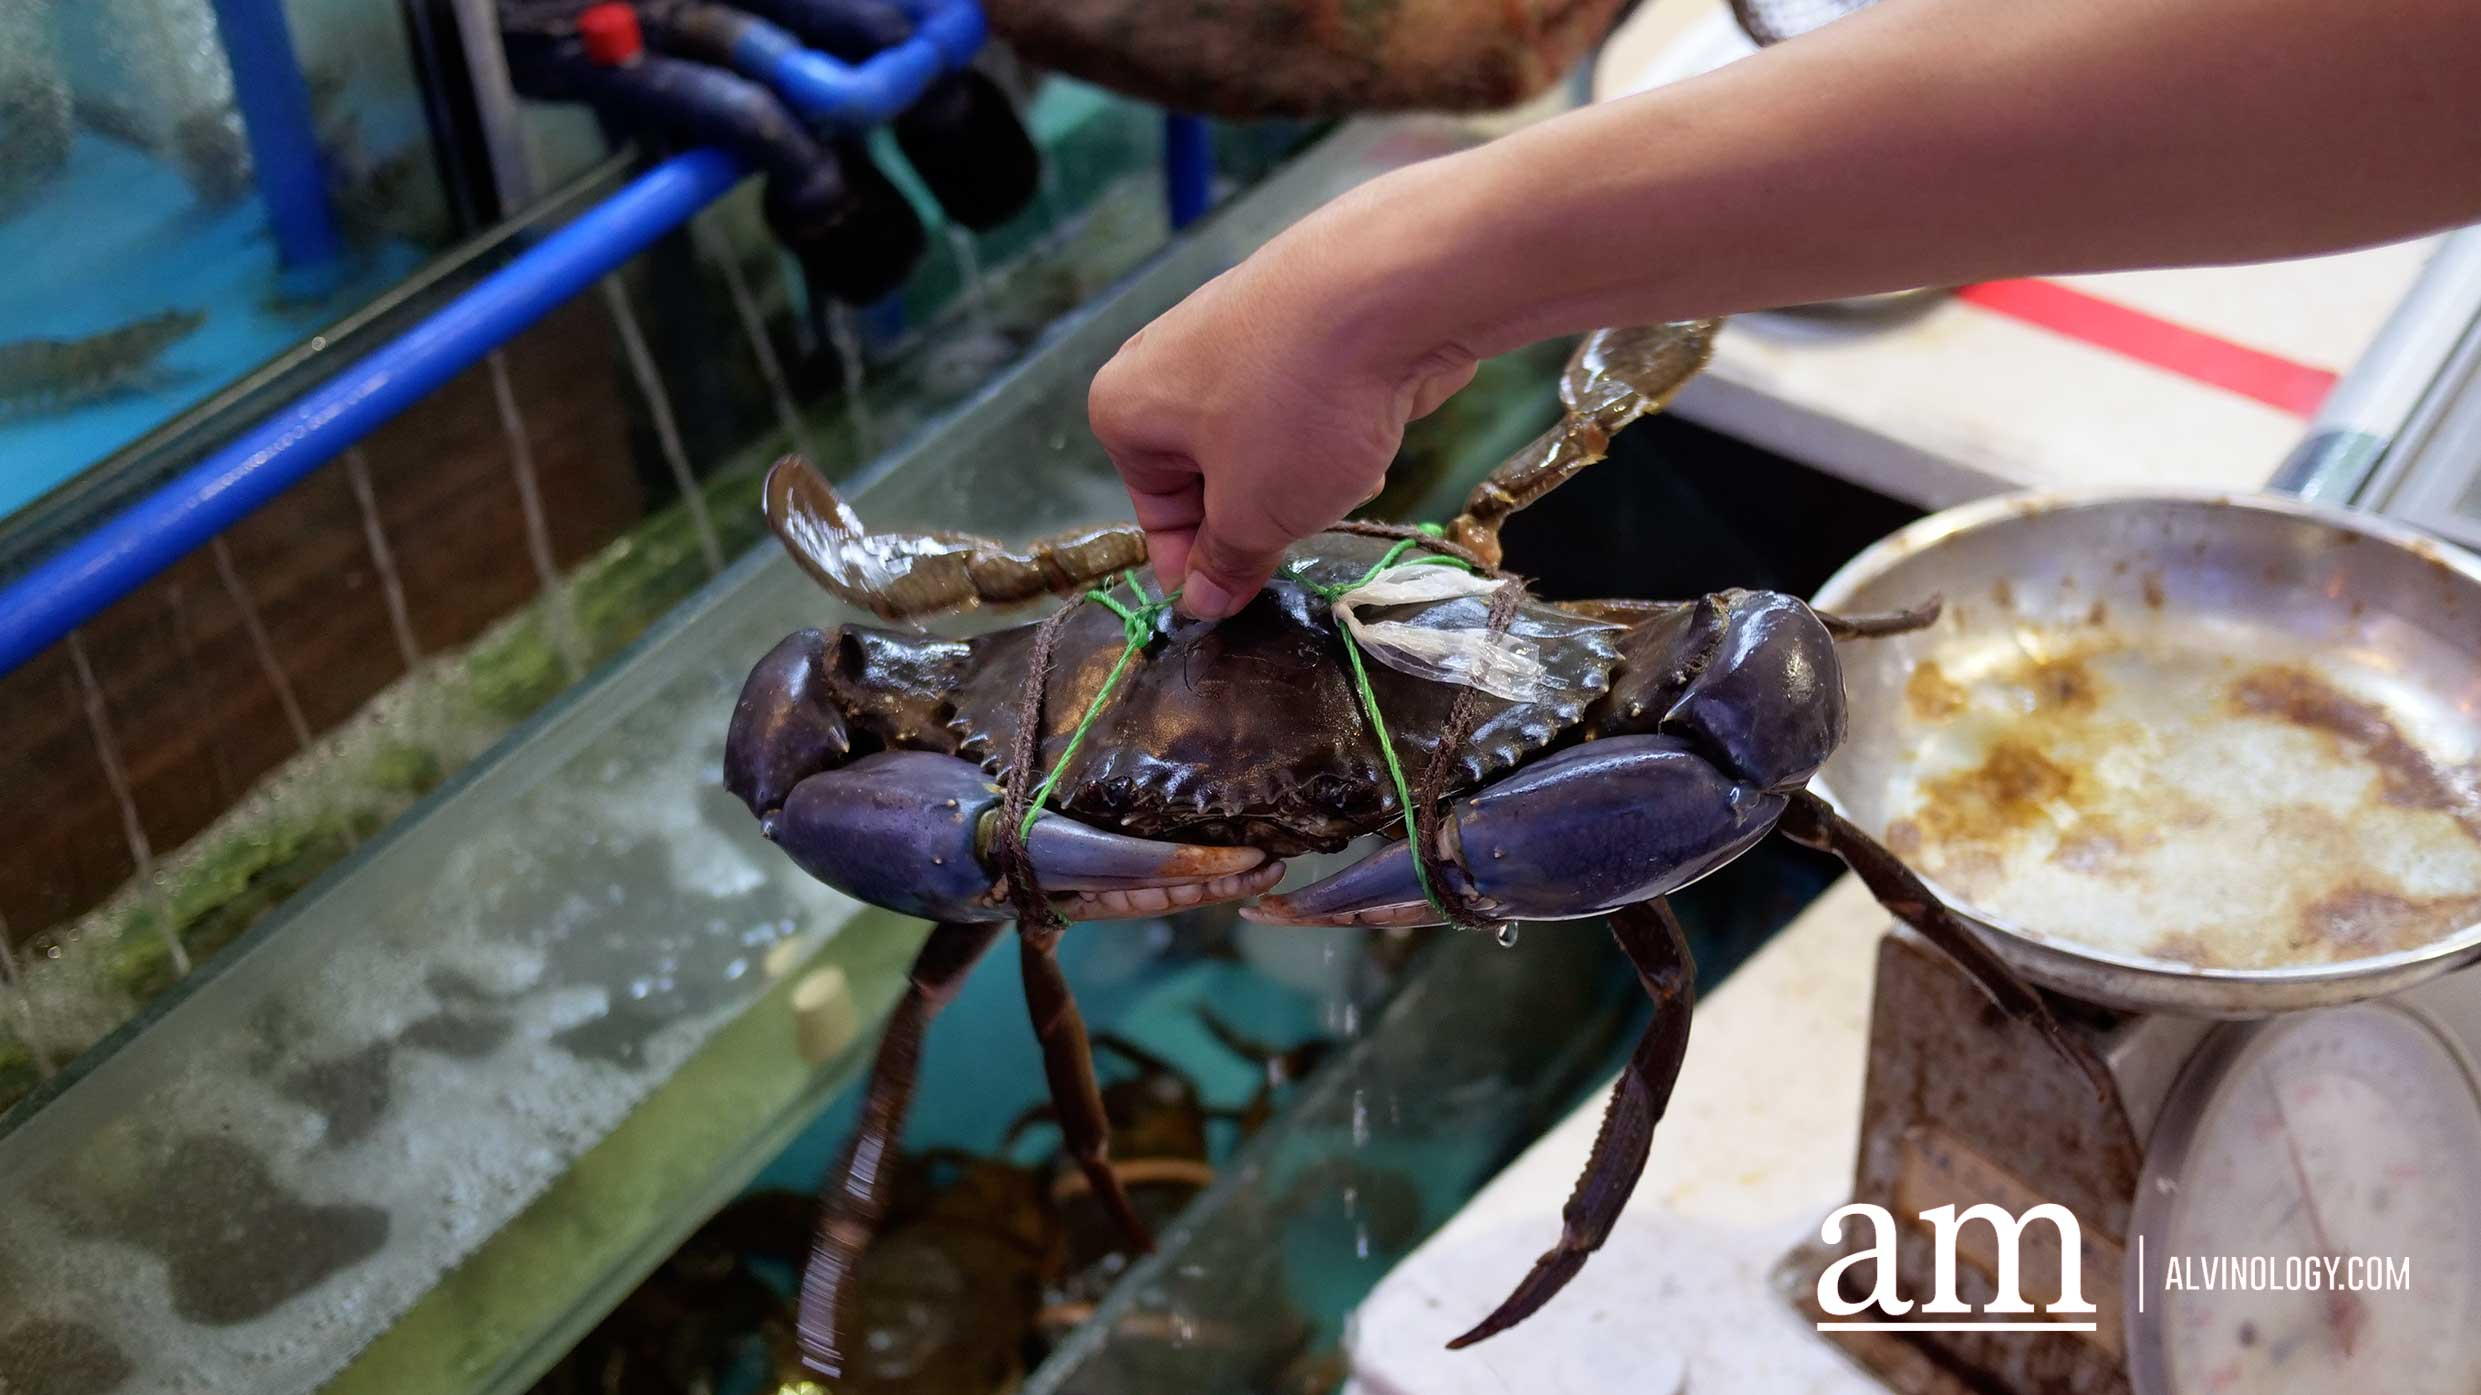 Tian Wei Seafood [Food Review] - value-for-money mala crab and other fresh seafood items - Alvinology